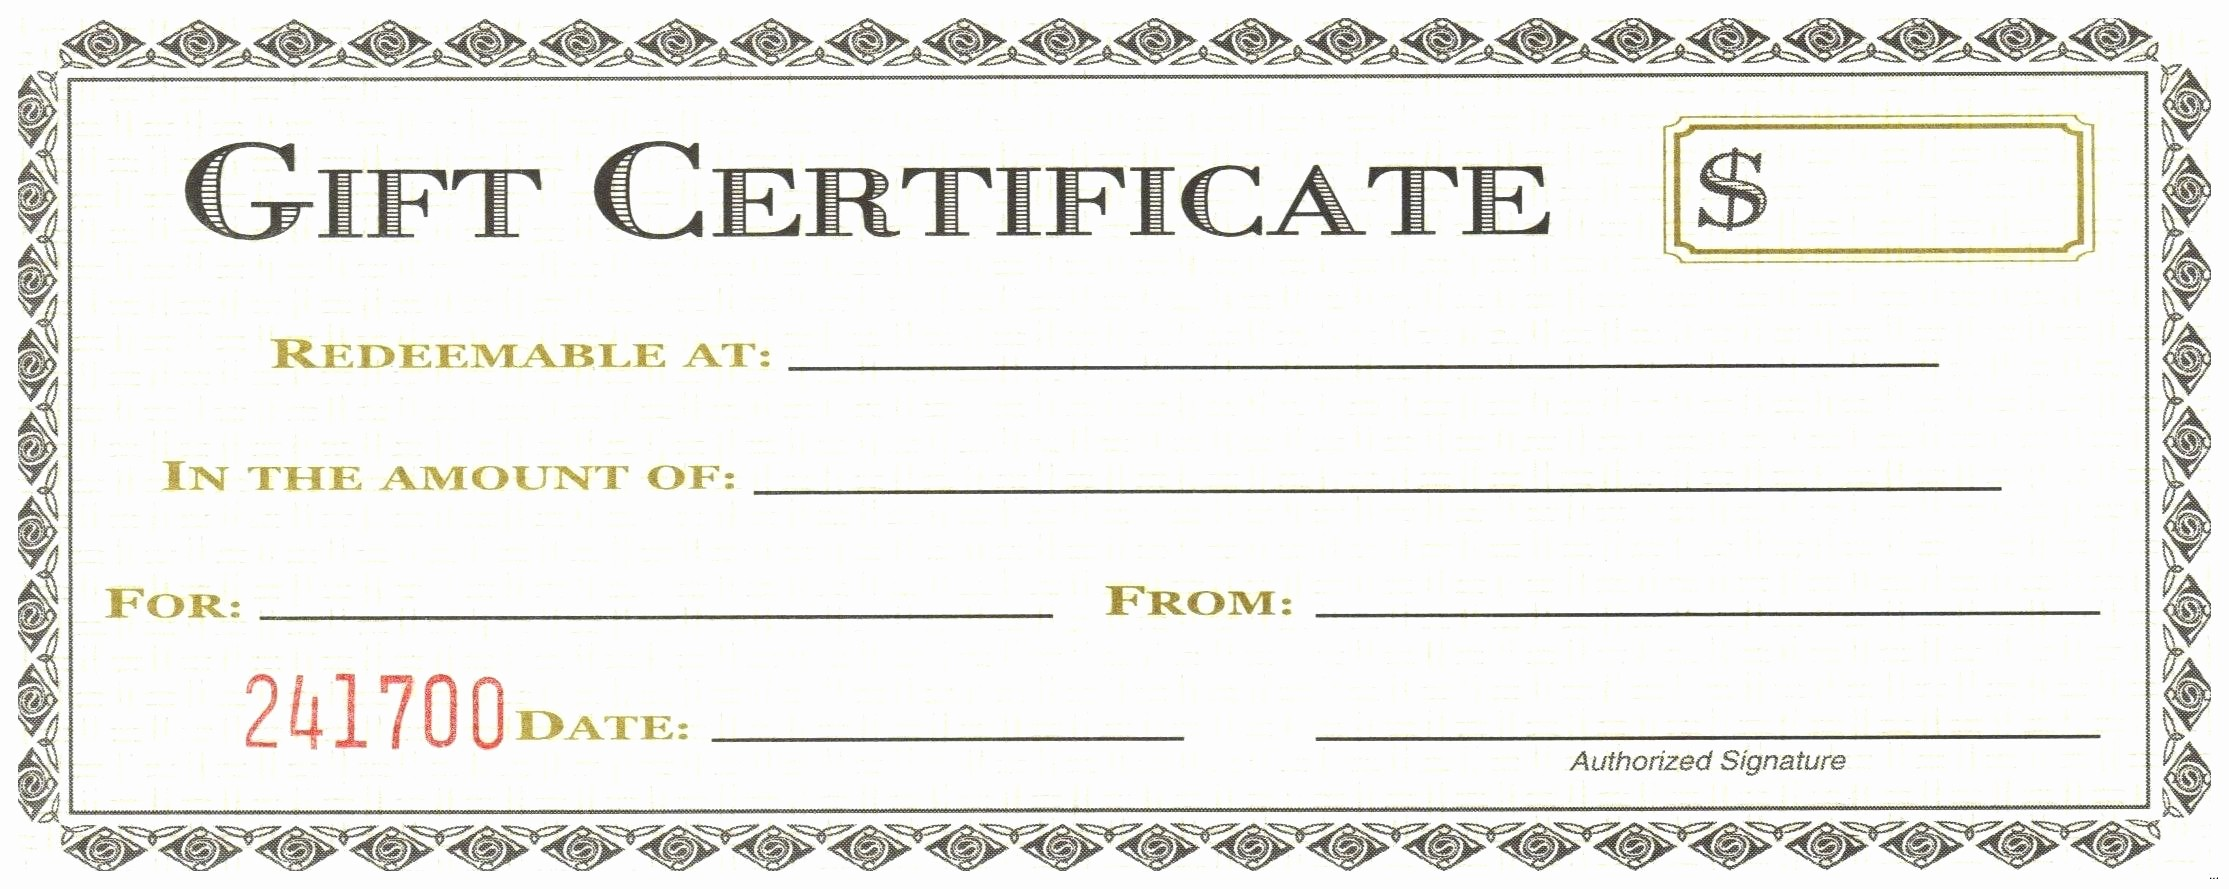 Gift Certificate Samples Free Templates Luxury Template Microsoft Fice Gift Certificate Template